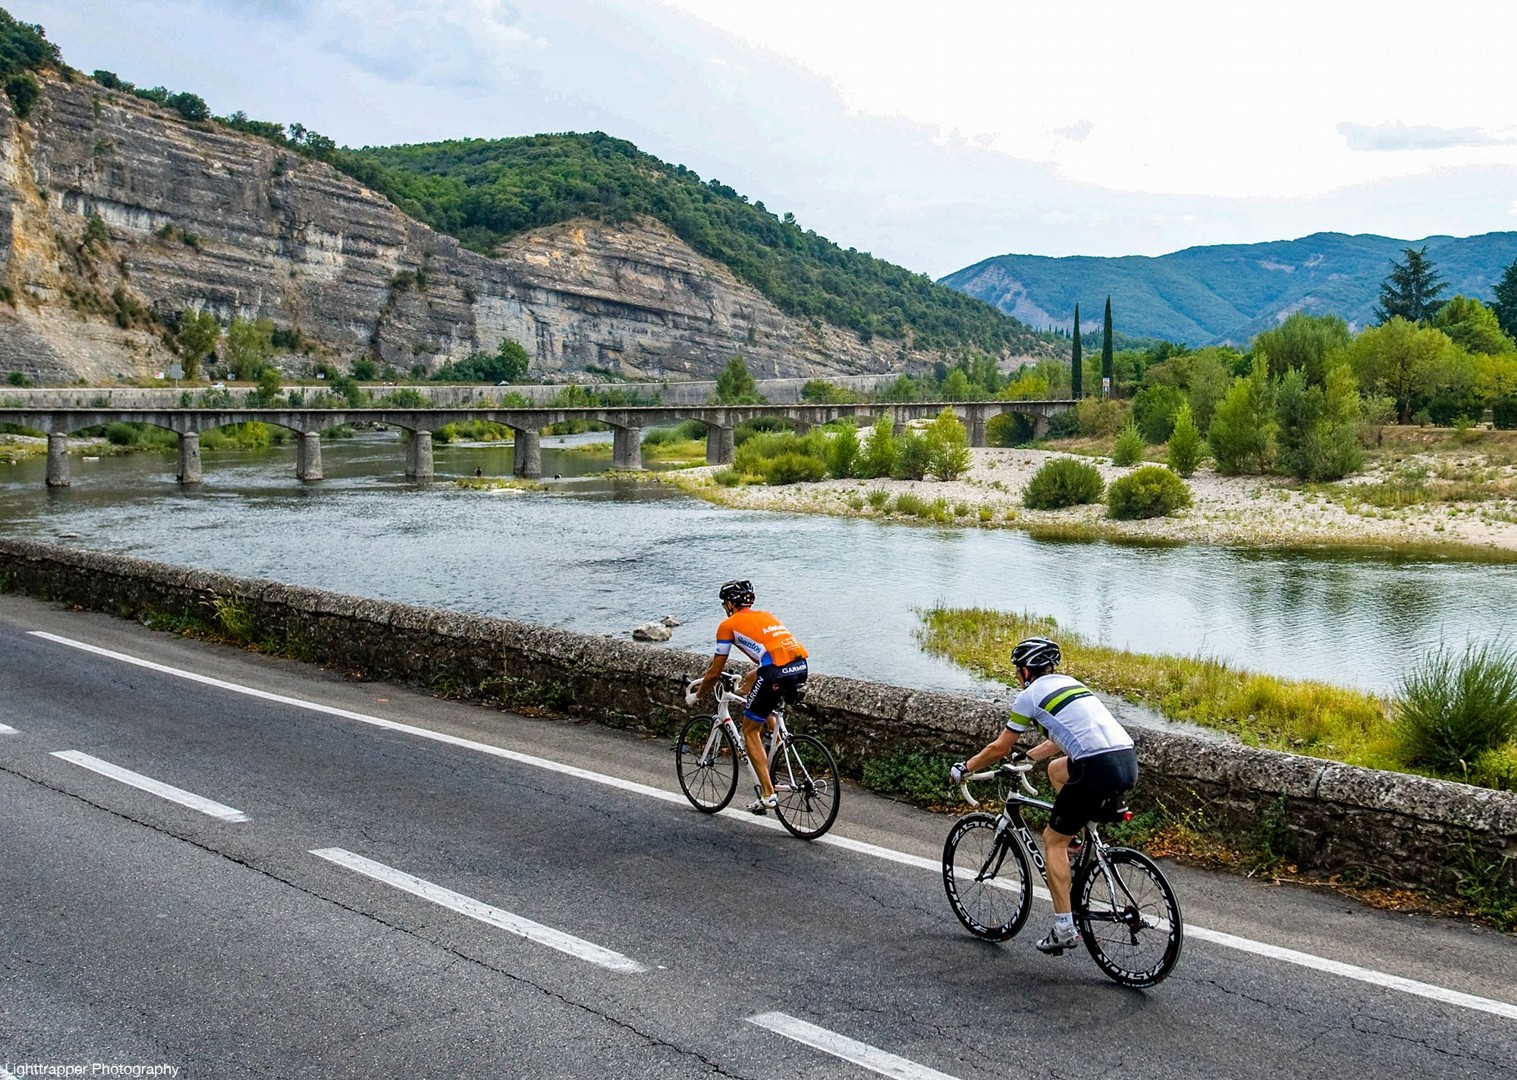 france-guided-road-cycling-ardeche-to-carcassonne-holiday-for-cyclists.jpg - France - Ardeche to Carcassonne - Guided Road Cycling Holiday - Road Cycling